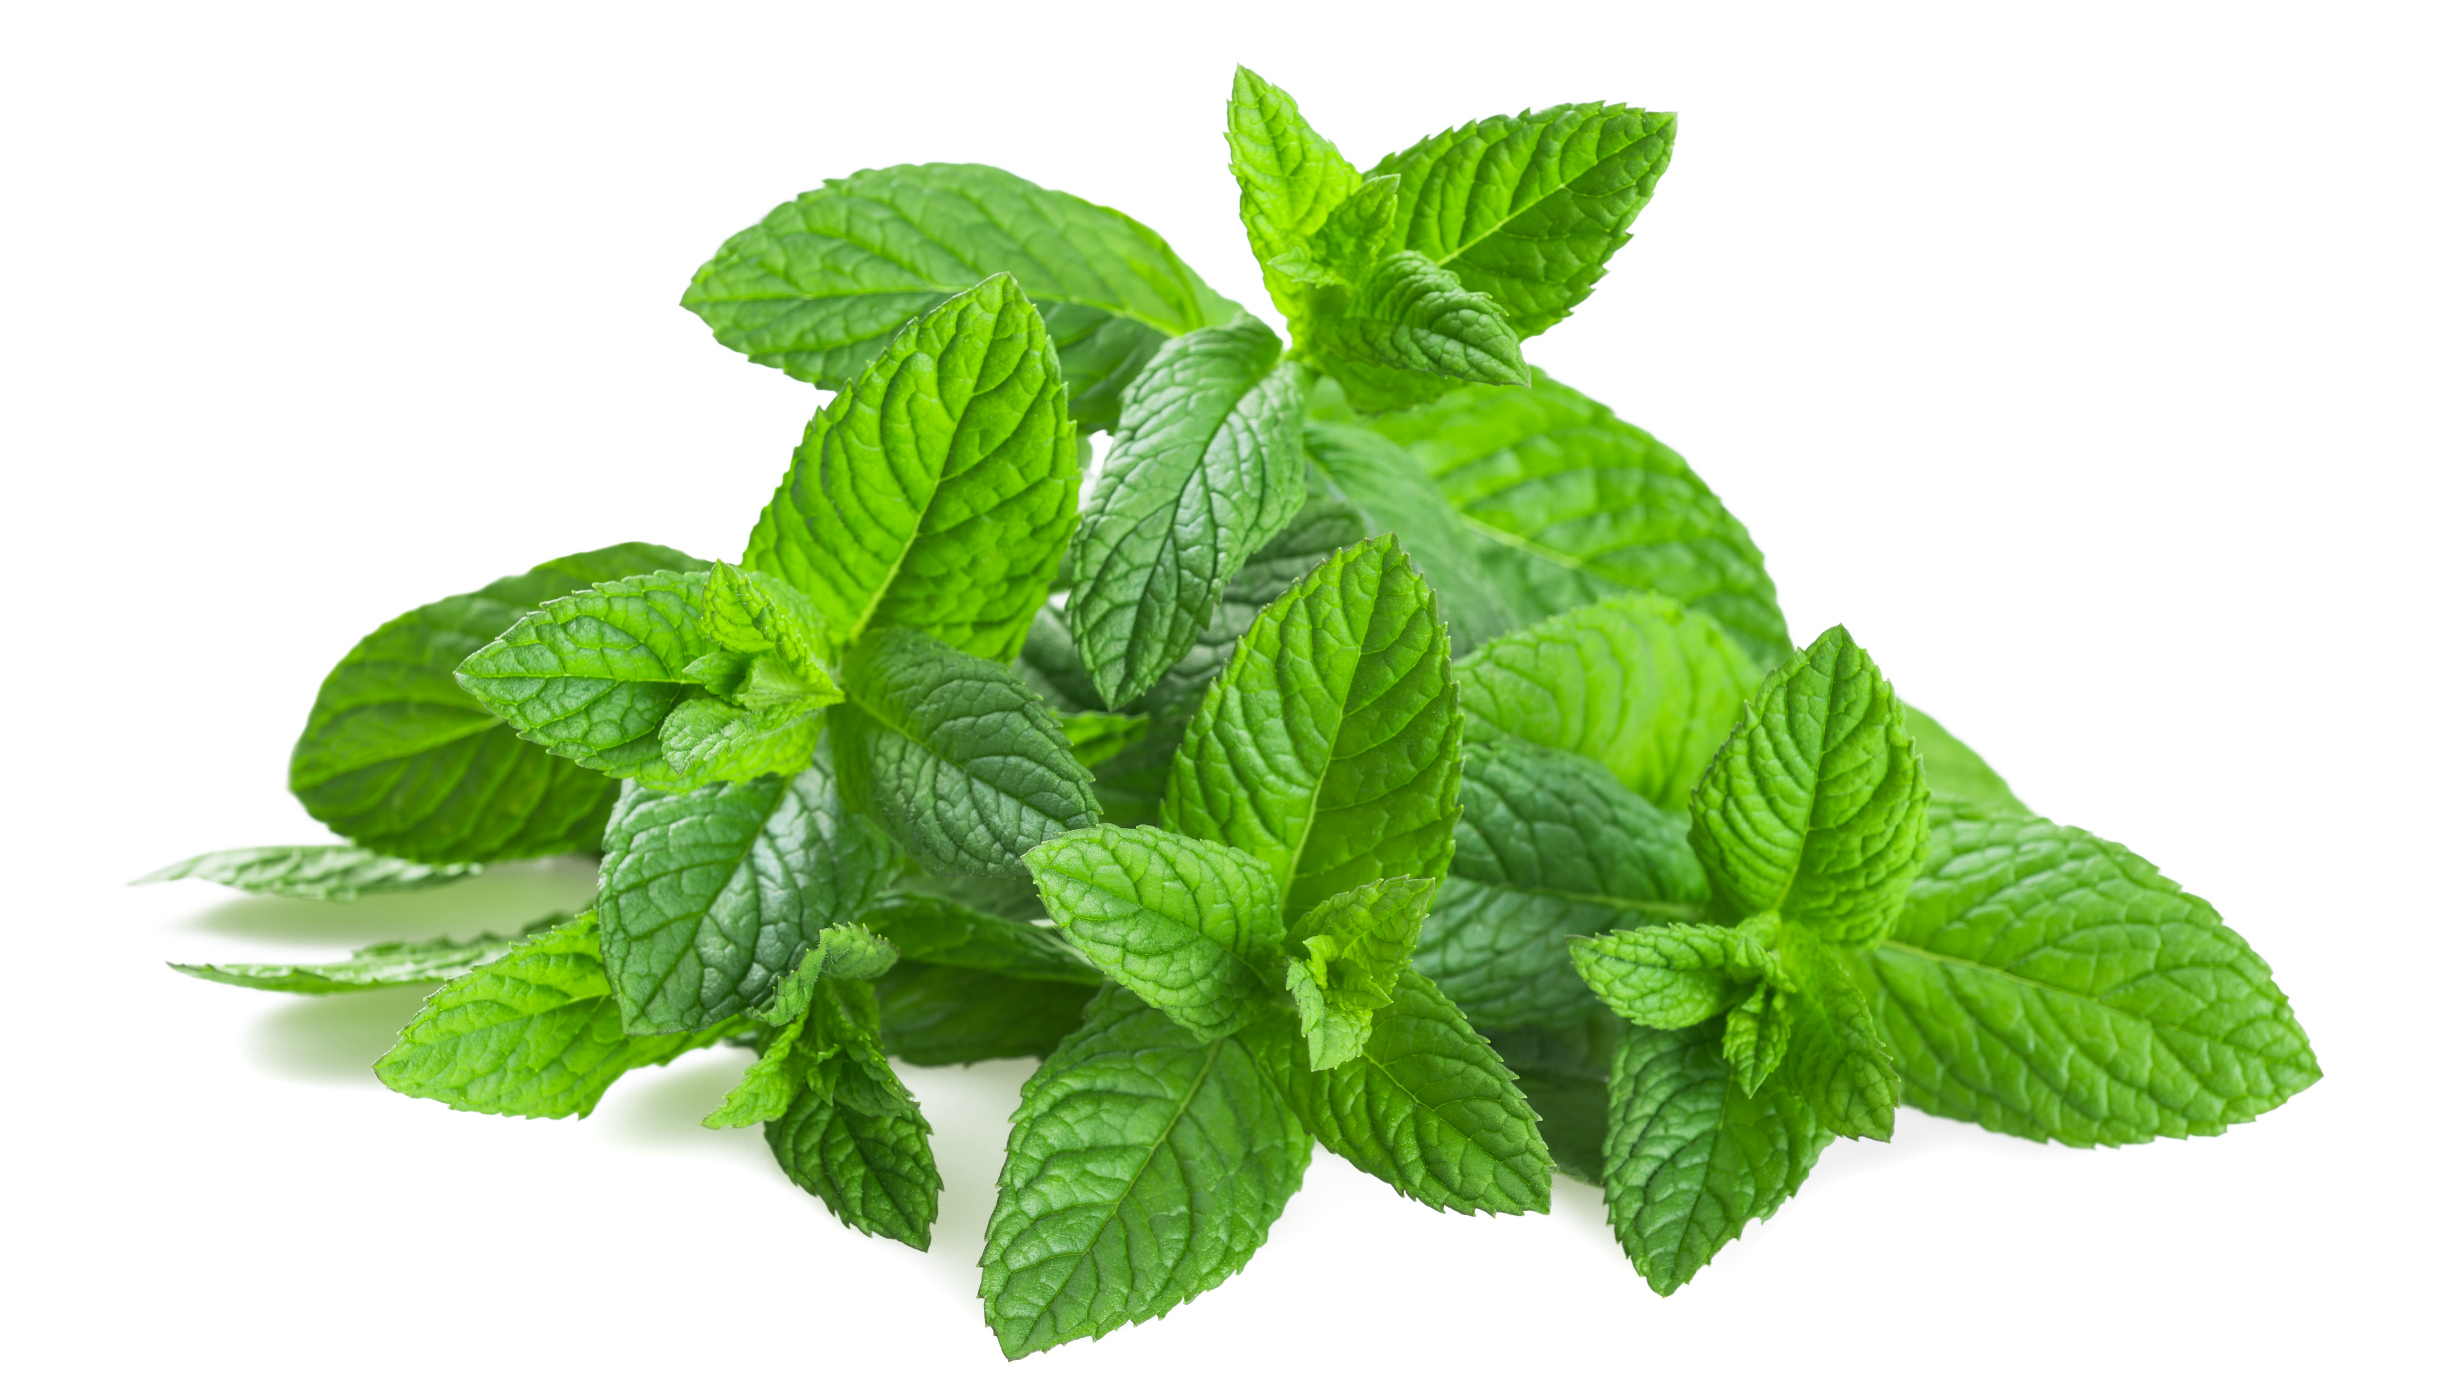 pepper mint Learn how to use essential oil of peppermint for digestive, immune support, and more.